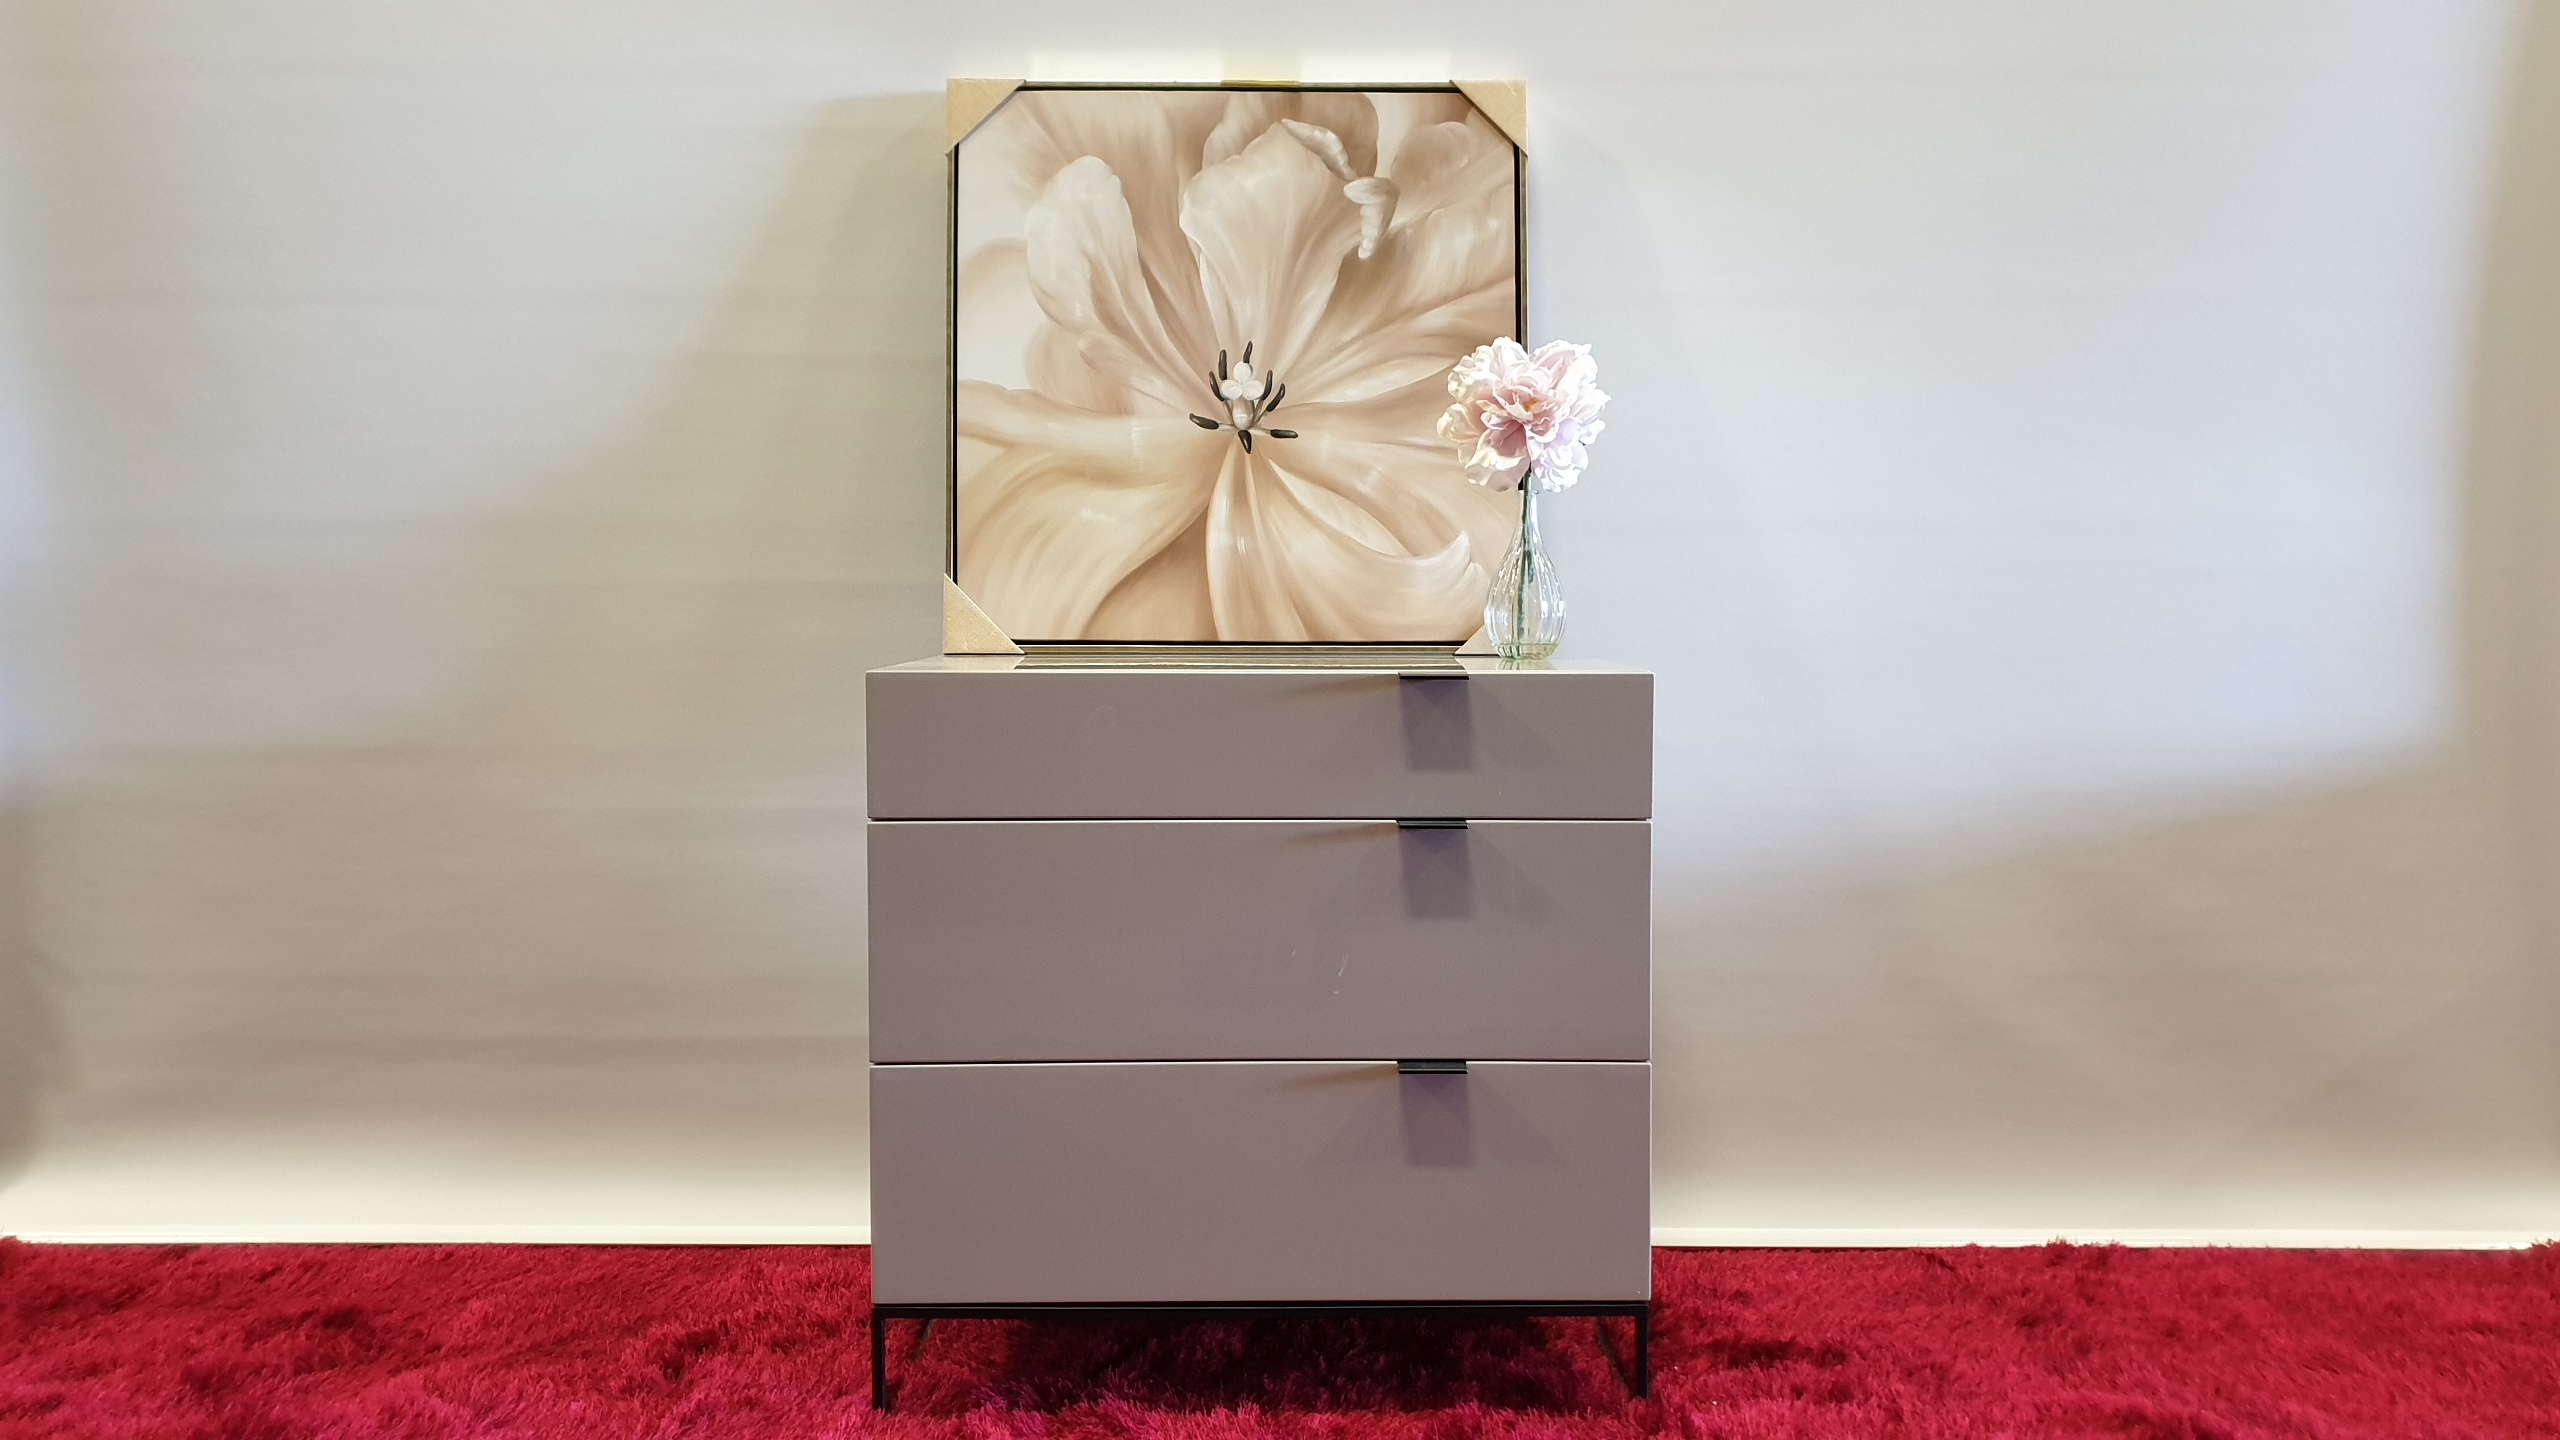 BRAND NEW 3 DRAWER HIGH GLOSS AVORIO MDF SOFT CLOSE CHEST OF DRAWERS 800 X 450 X 803MM RRP £329